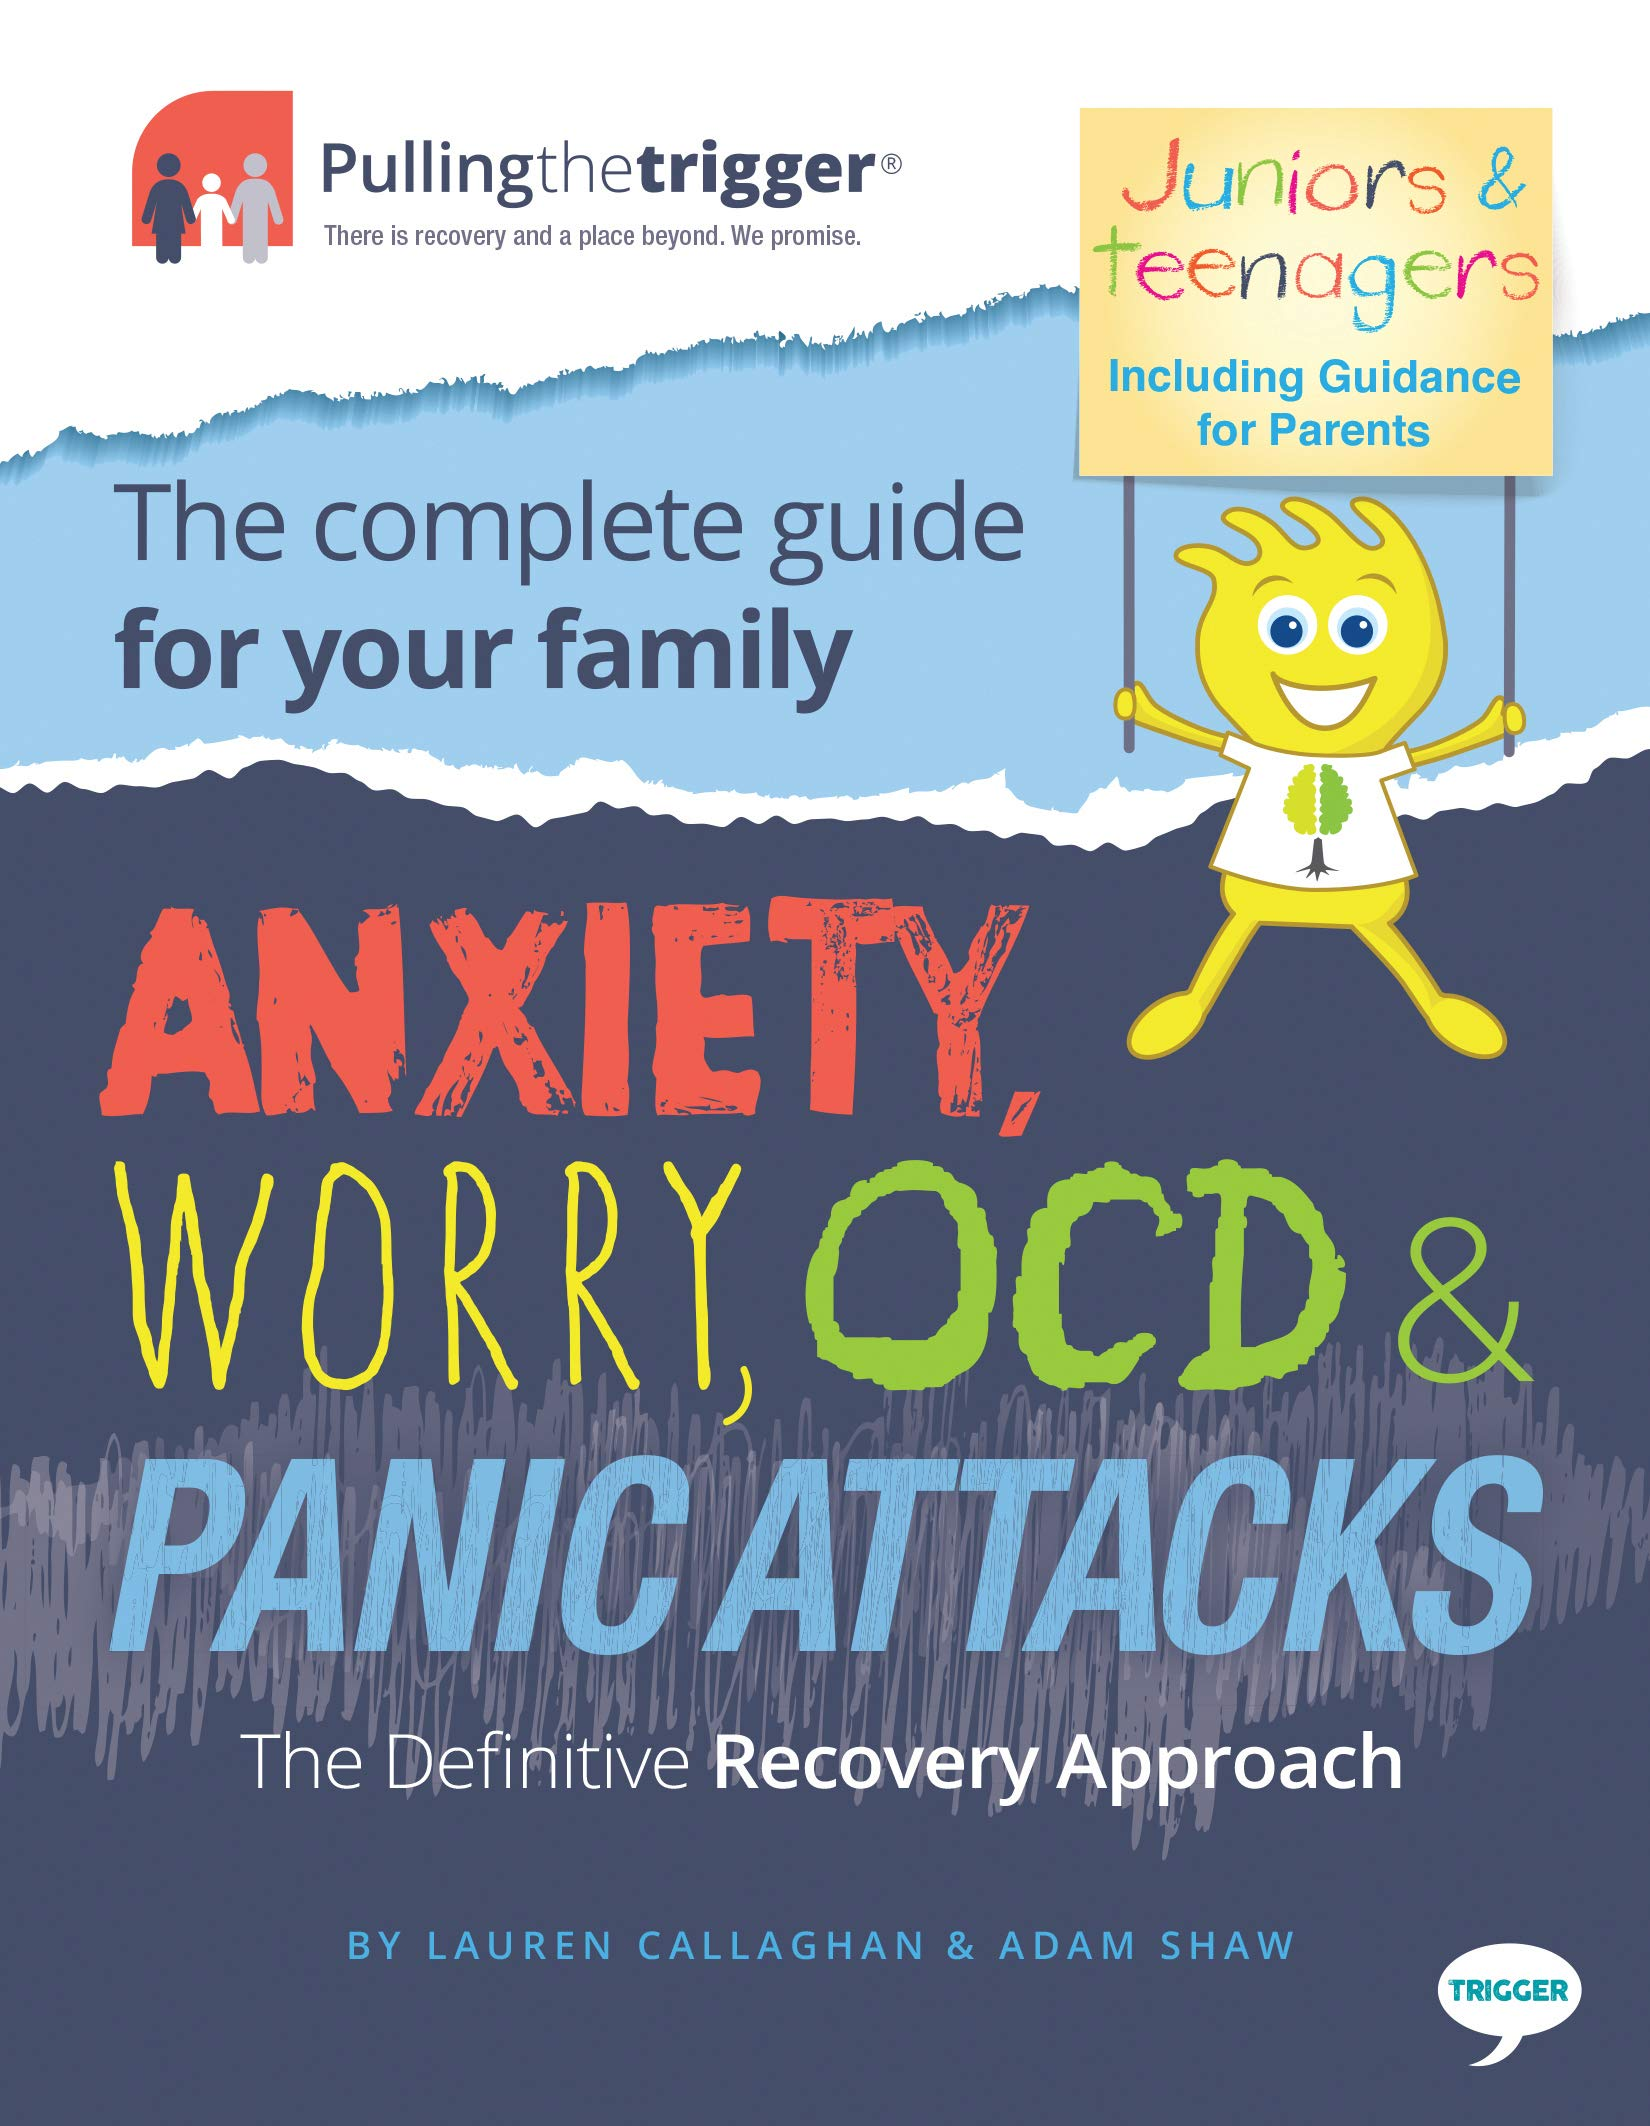 Download Anxiety, Worry, OCD & Panic Attacks - The Definitive Recovery Approach: The Complete Guide For Your Family (Pulling The Tr... 